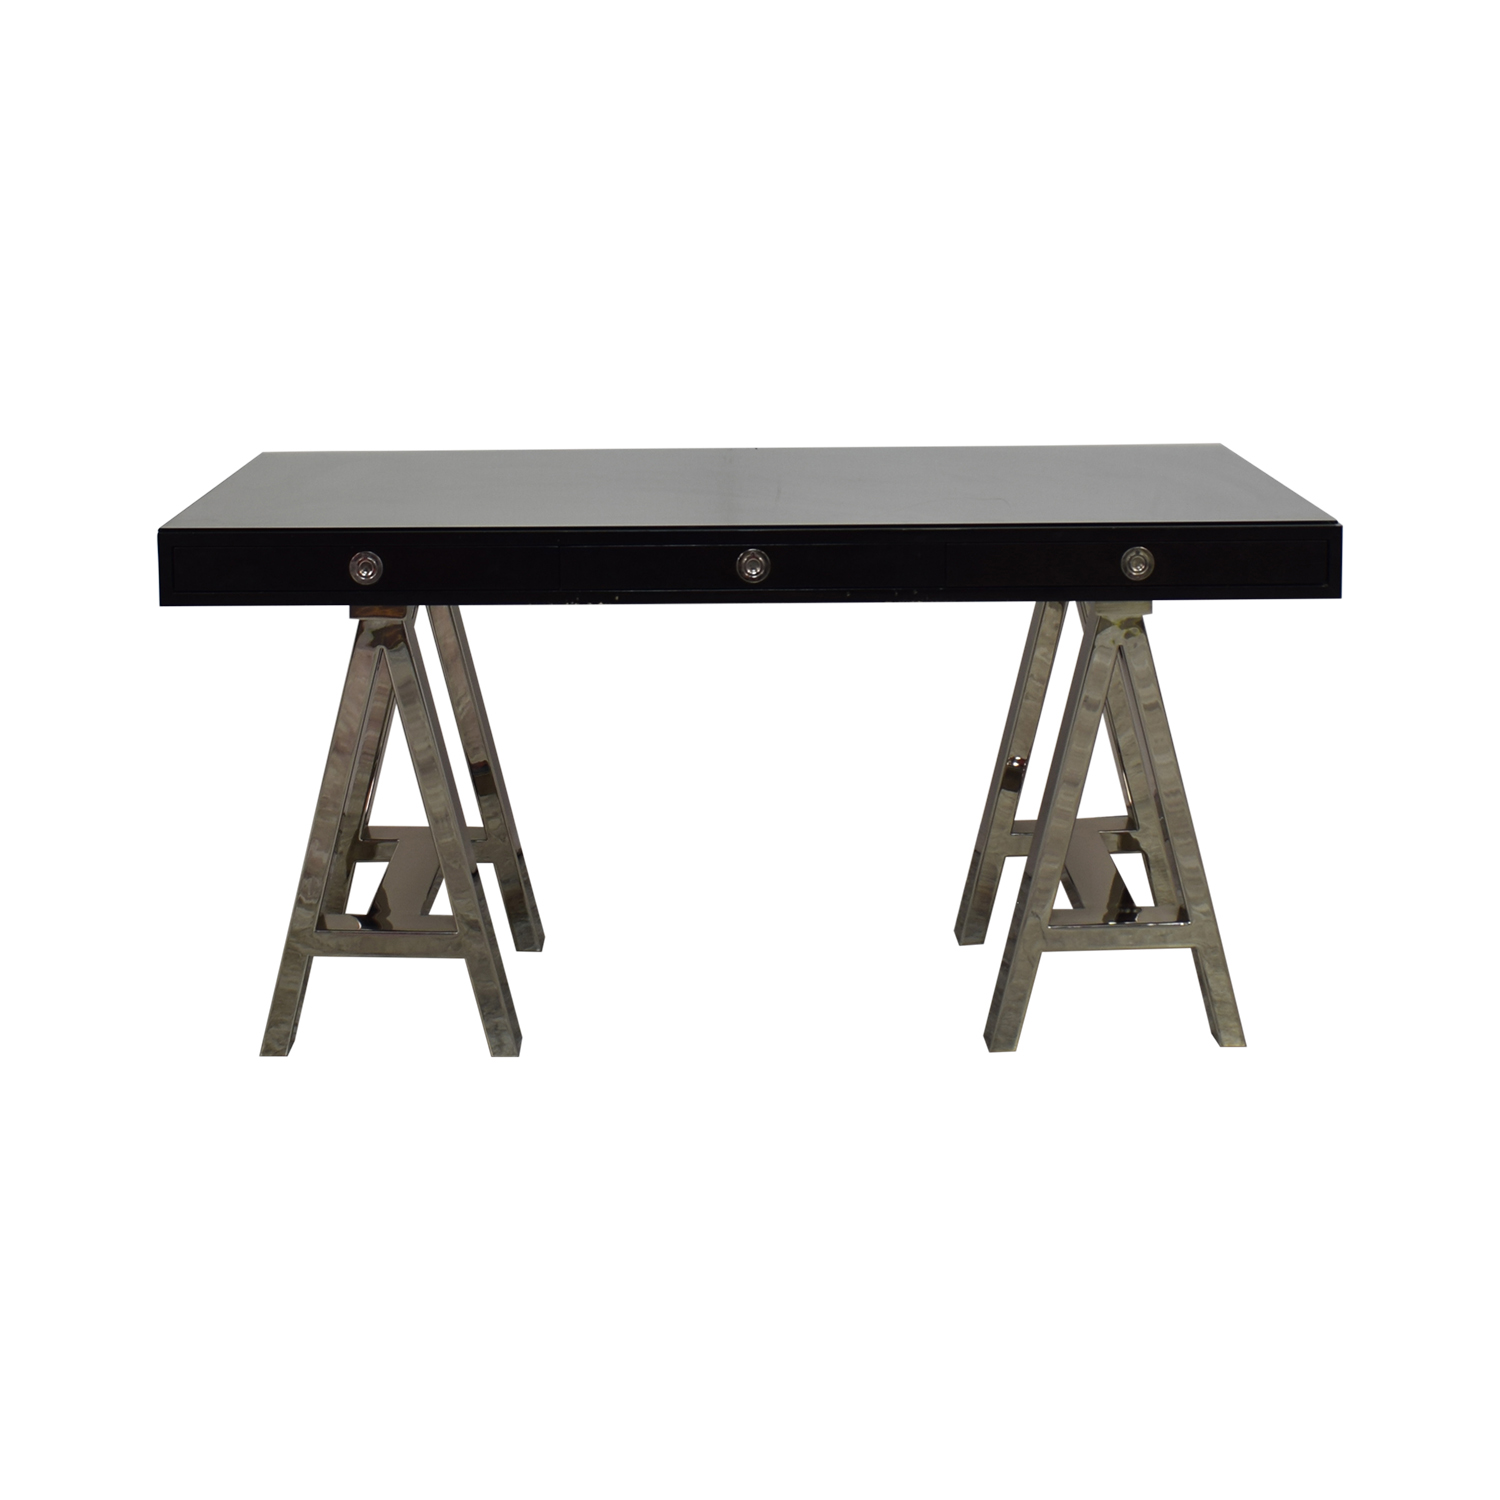 Williams Sonoma Williams Sonoma Mason Ebony Wood Desk with Chrome Sawhorse Legs nyc